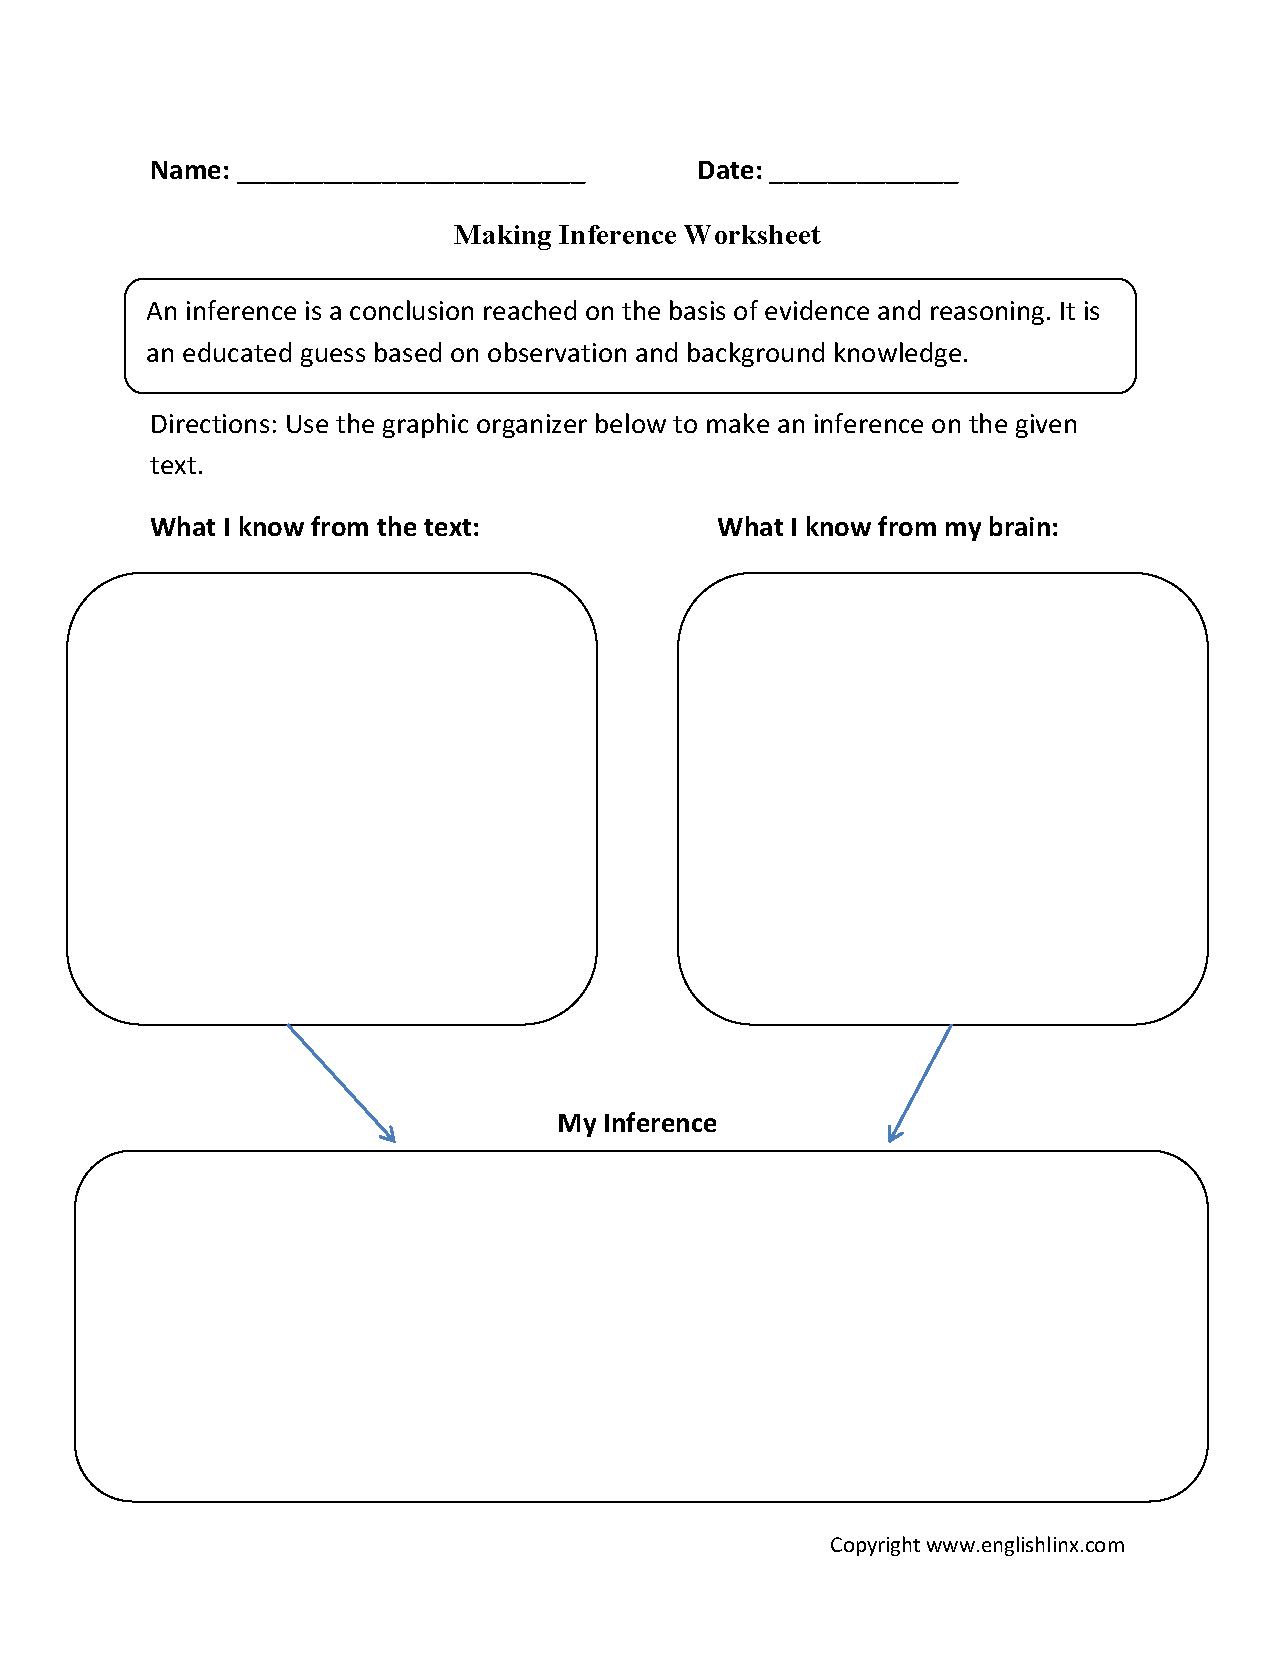 Printables Making Inferences Worksheets reading worksheets inference making worksheet